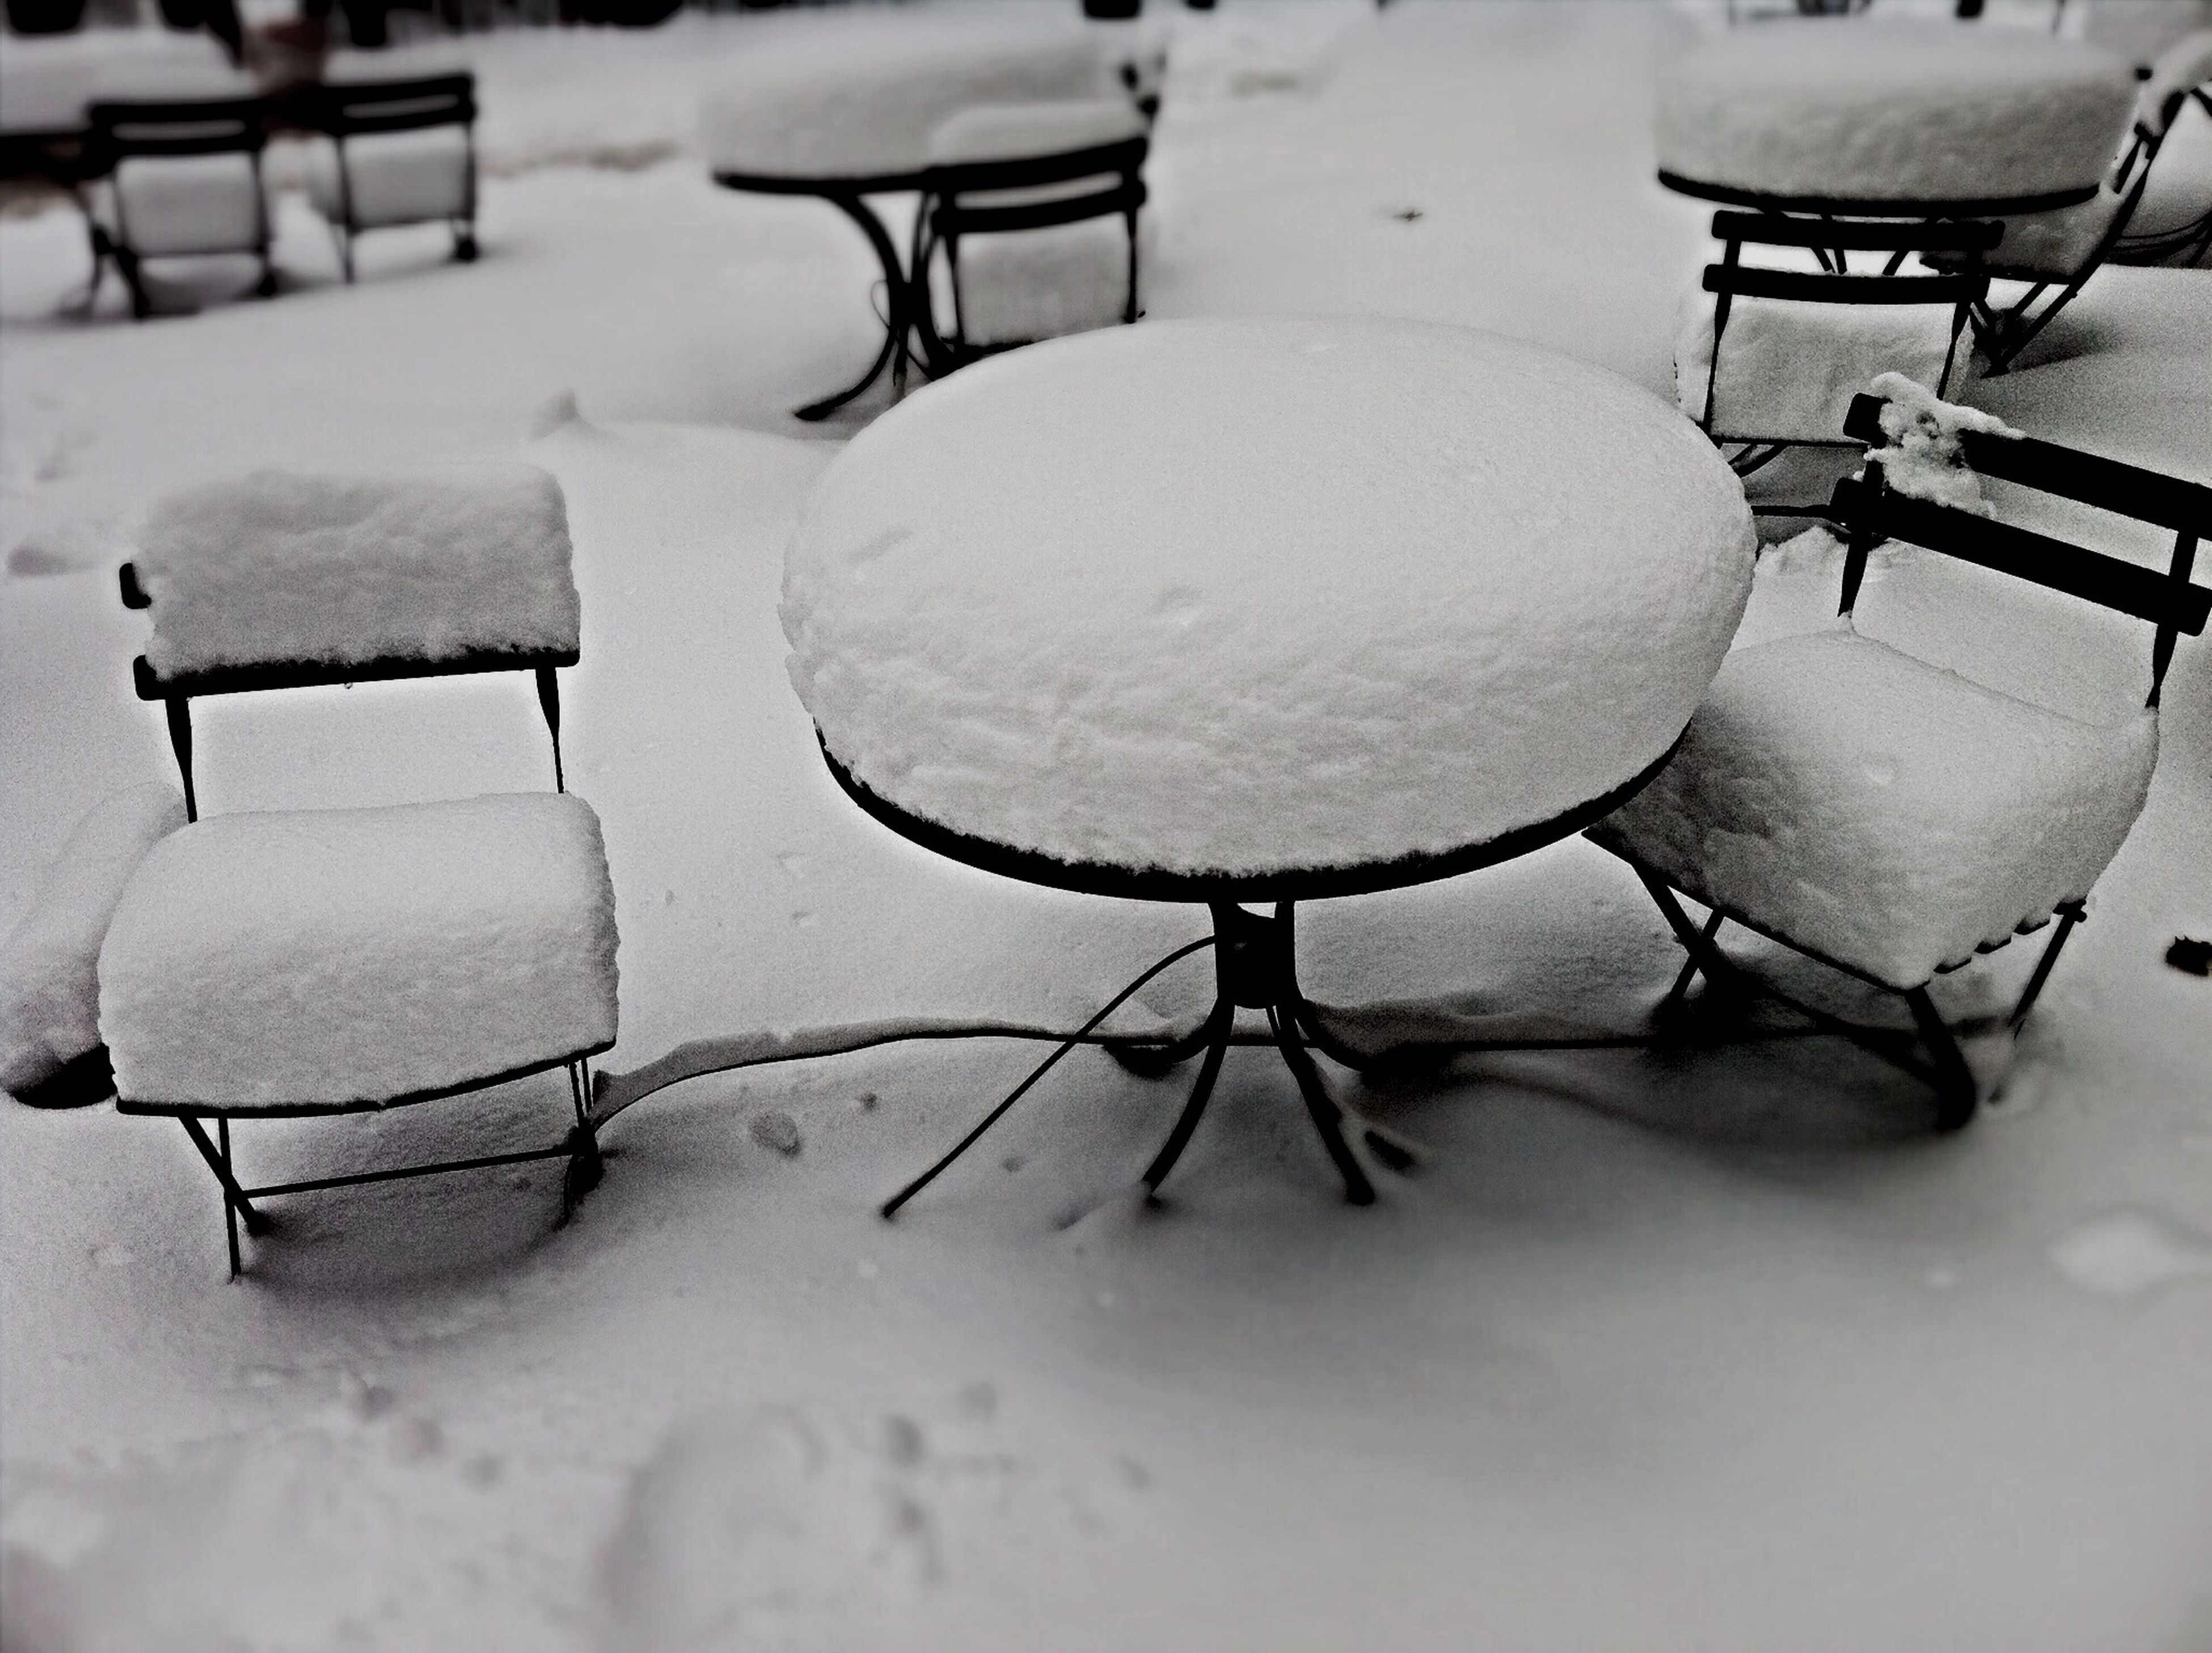 metal, chair, absence, empty, winter, snow, cold temperature, no people, close-up, still life, high angle view, covering, day, outdoors, seat, focus on foreground, abandoned, field, table, metallic